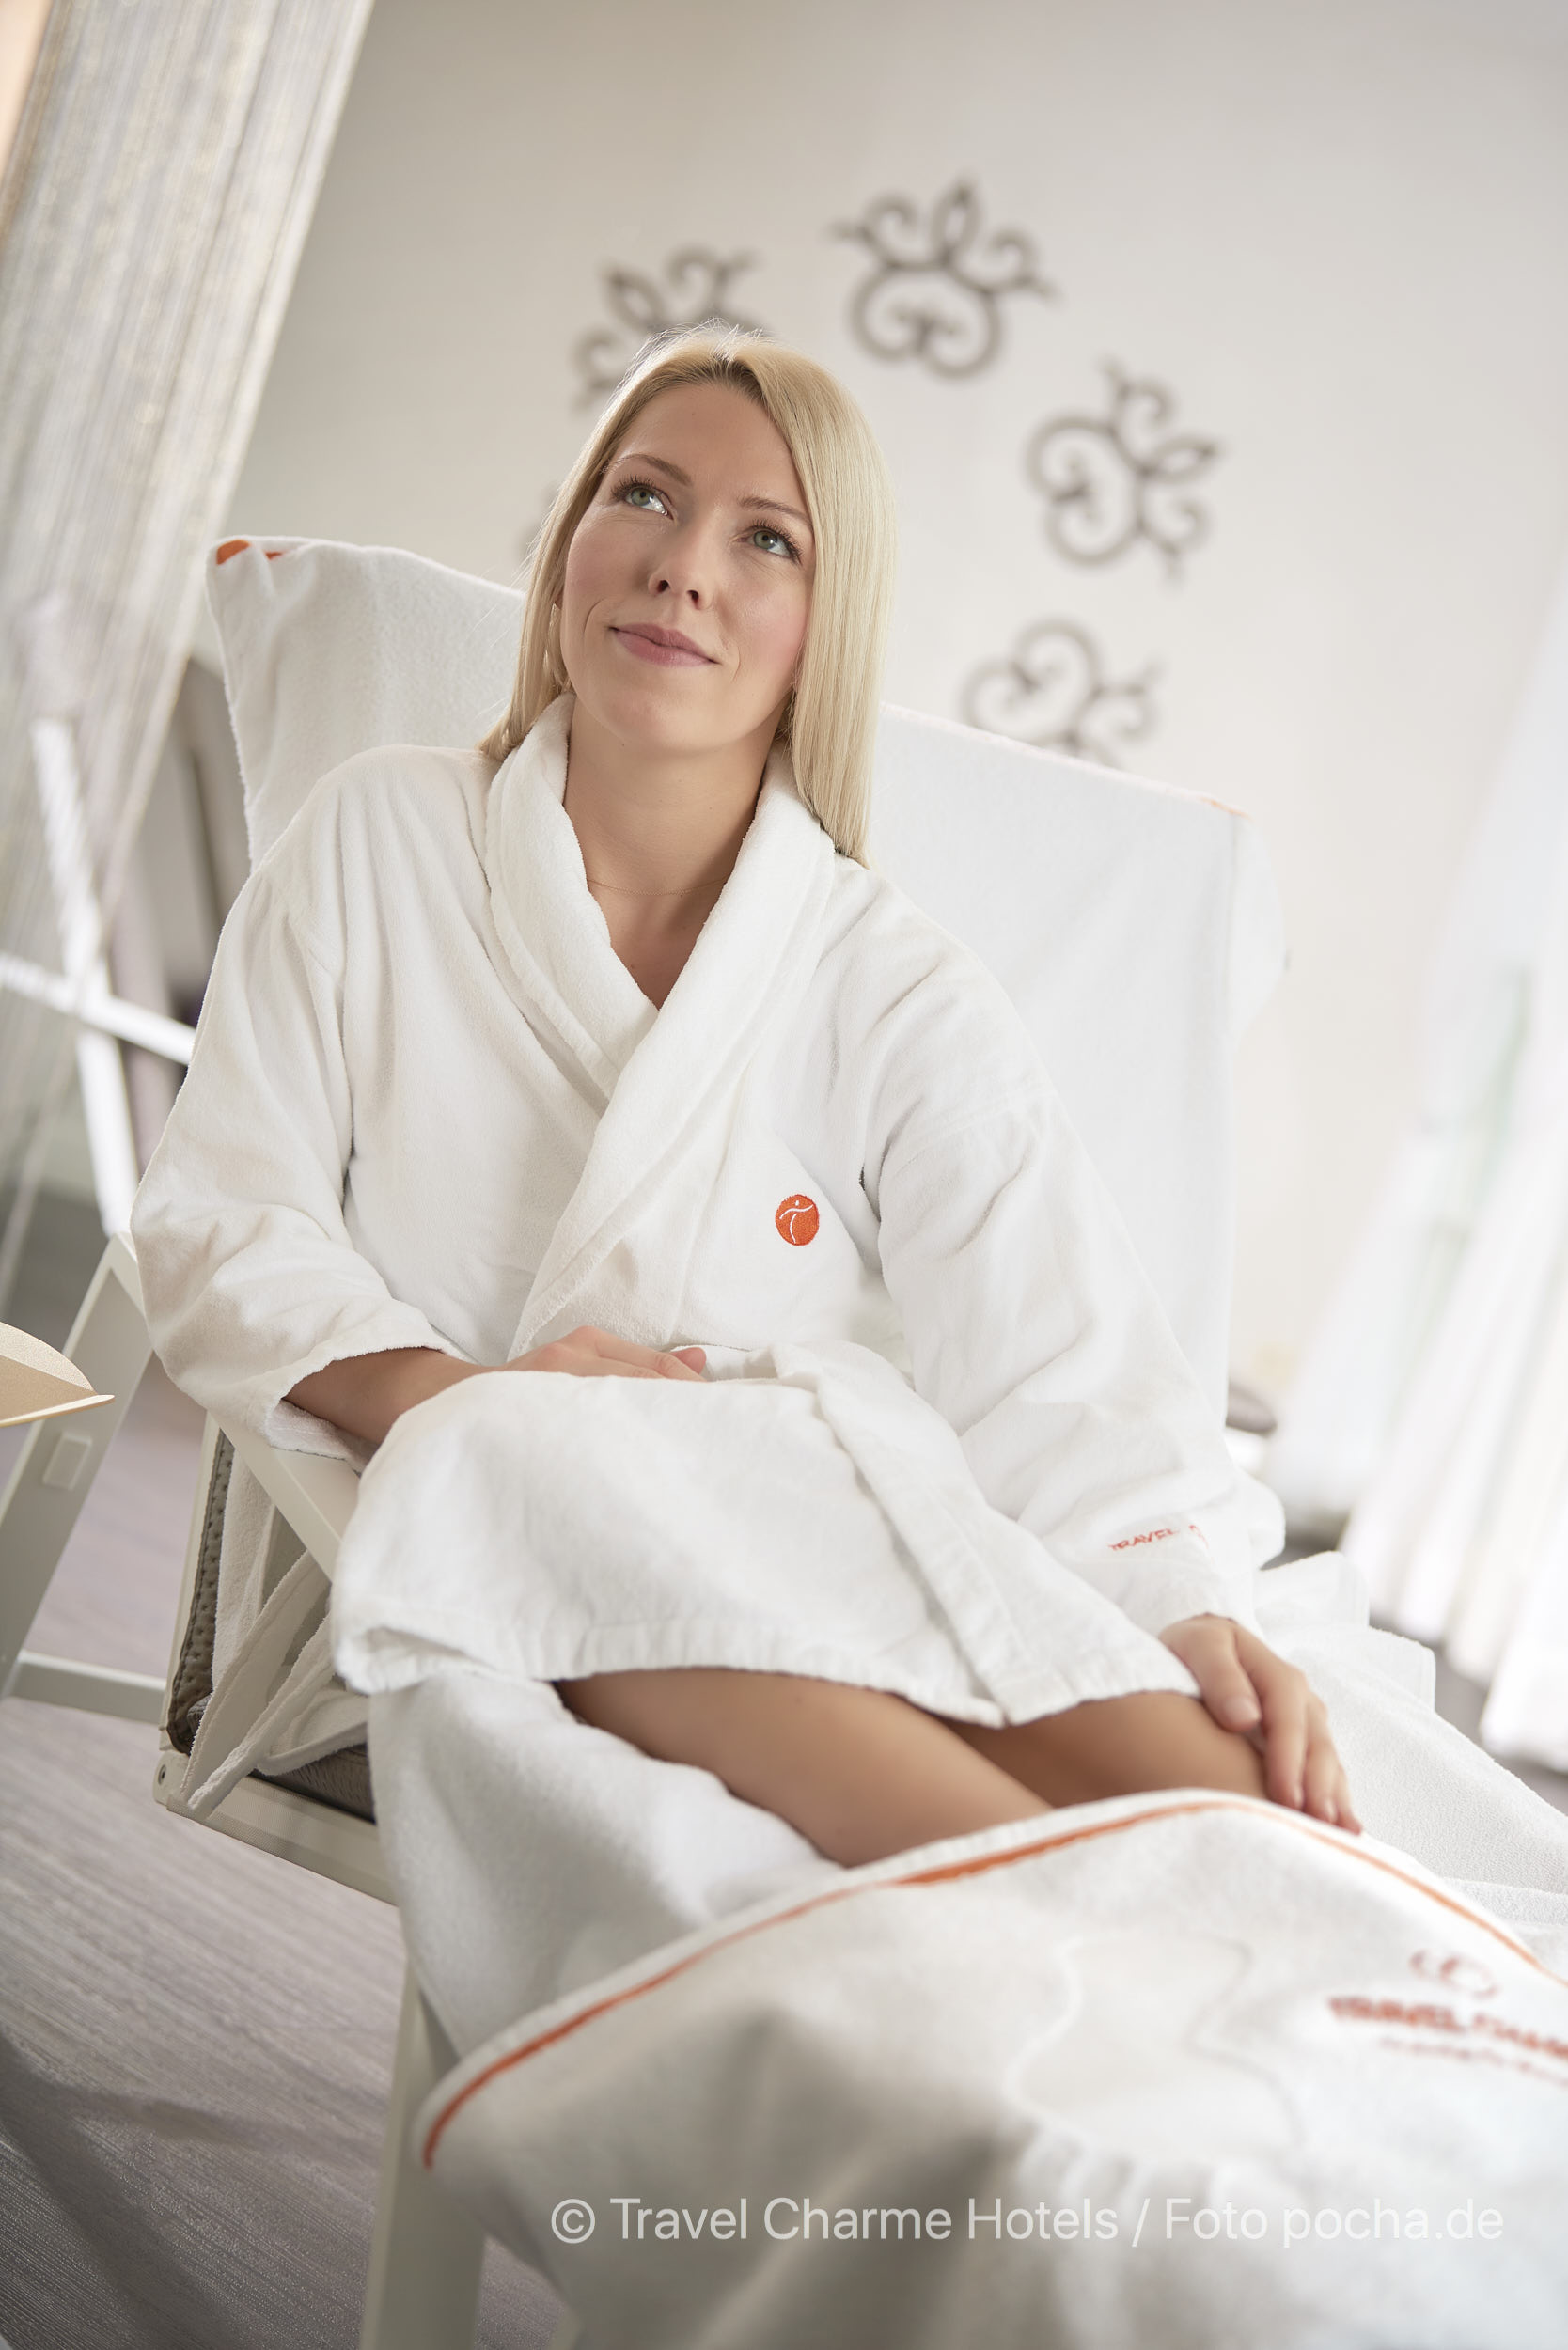 Liesa Wellness Komfort Handtuch Produkt Photoshooting mit Model im Travel Charme Hotel